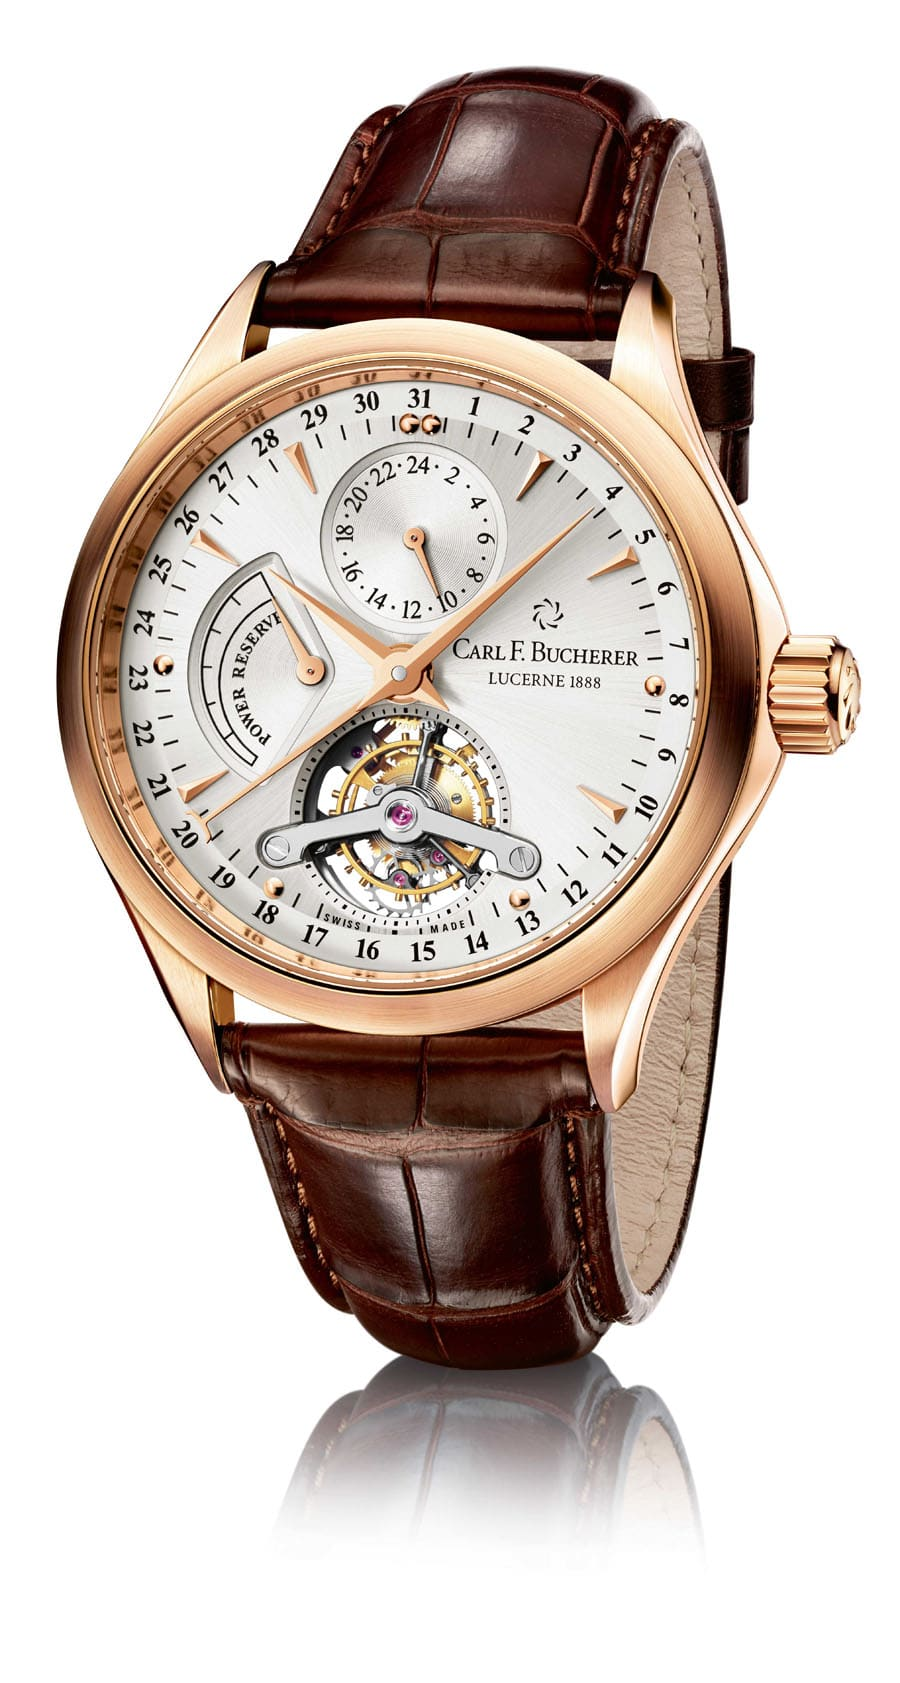 Carl F. Bucherer: Manero Tourbillon